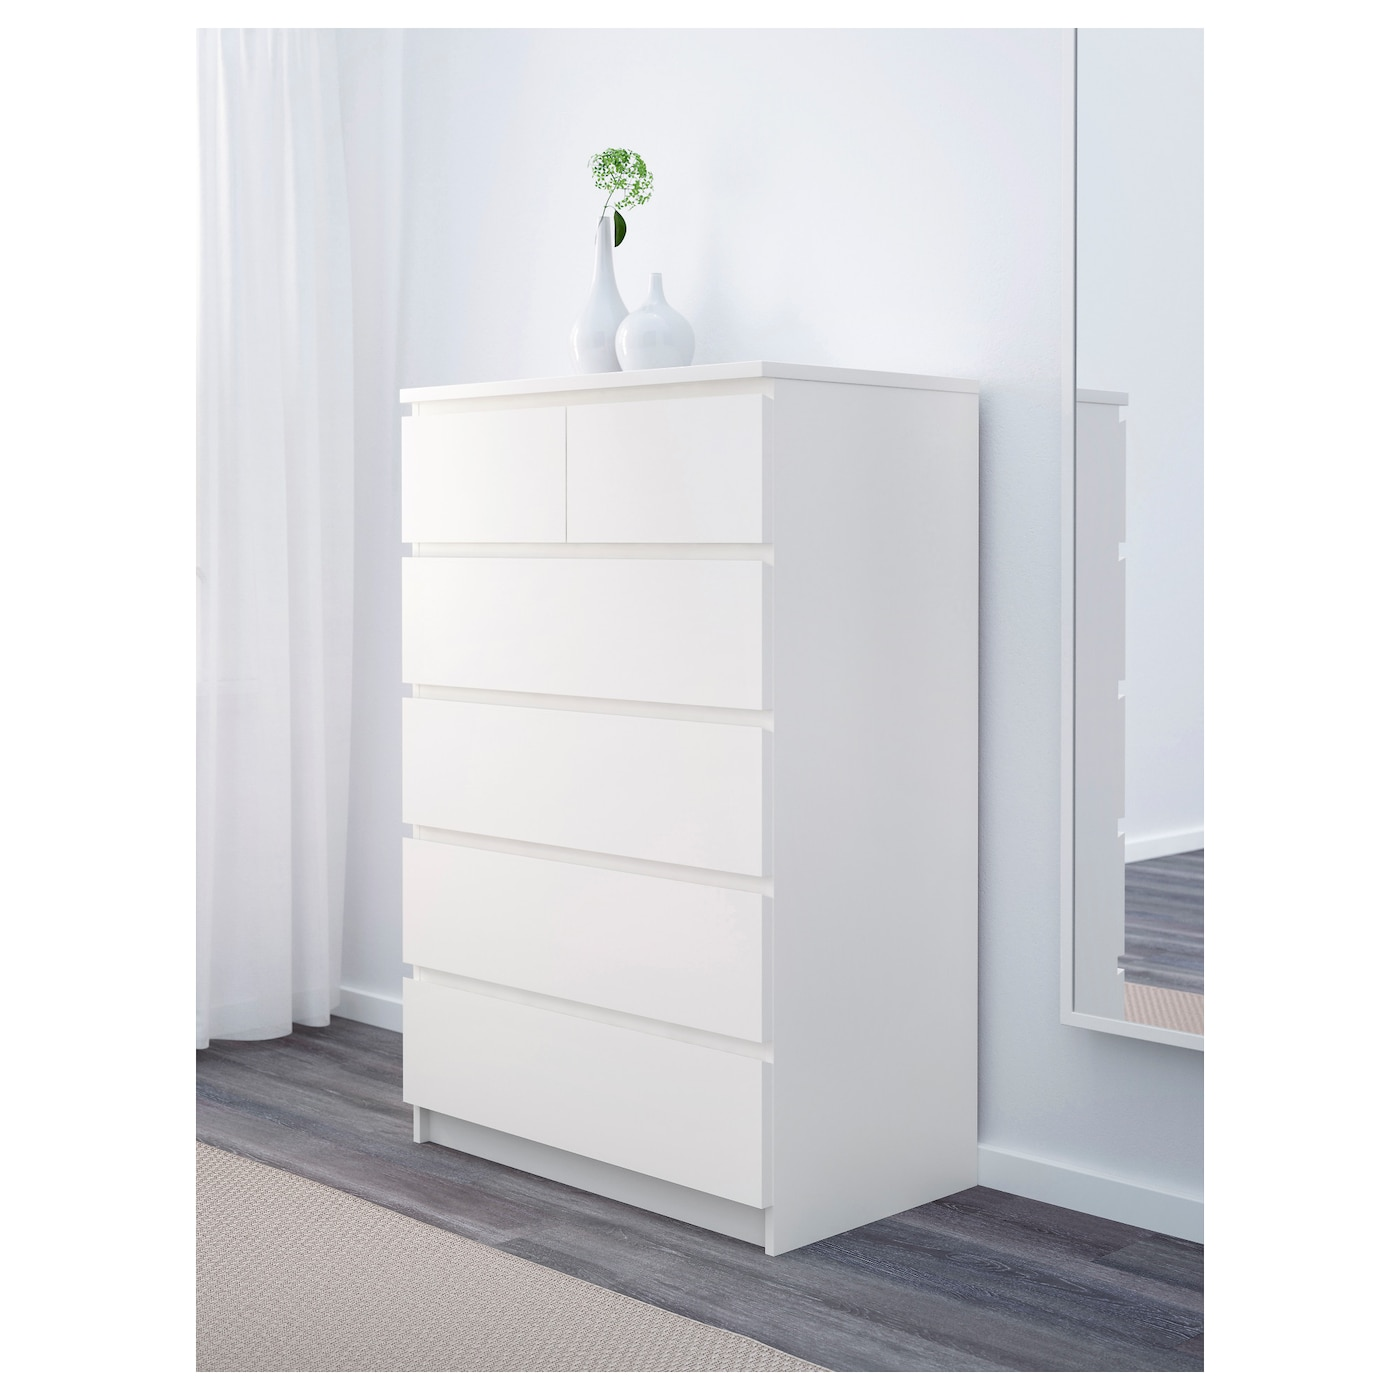 Malm chest of 6 drawers white 80x123 cm ikea for Commode salle de bain ikea